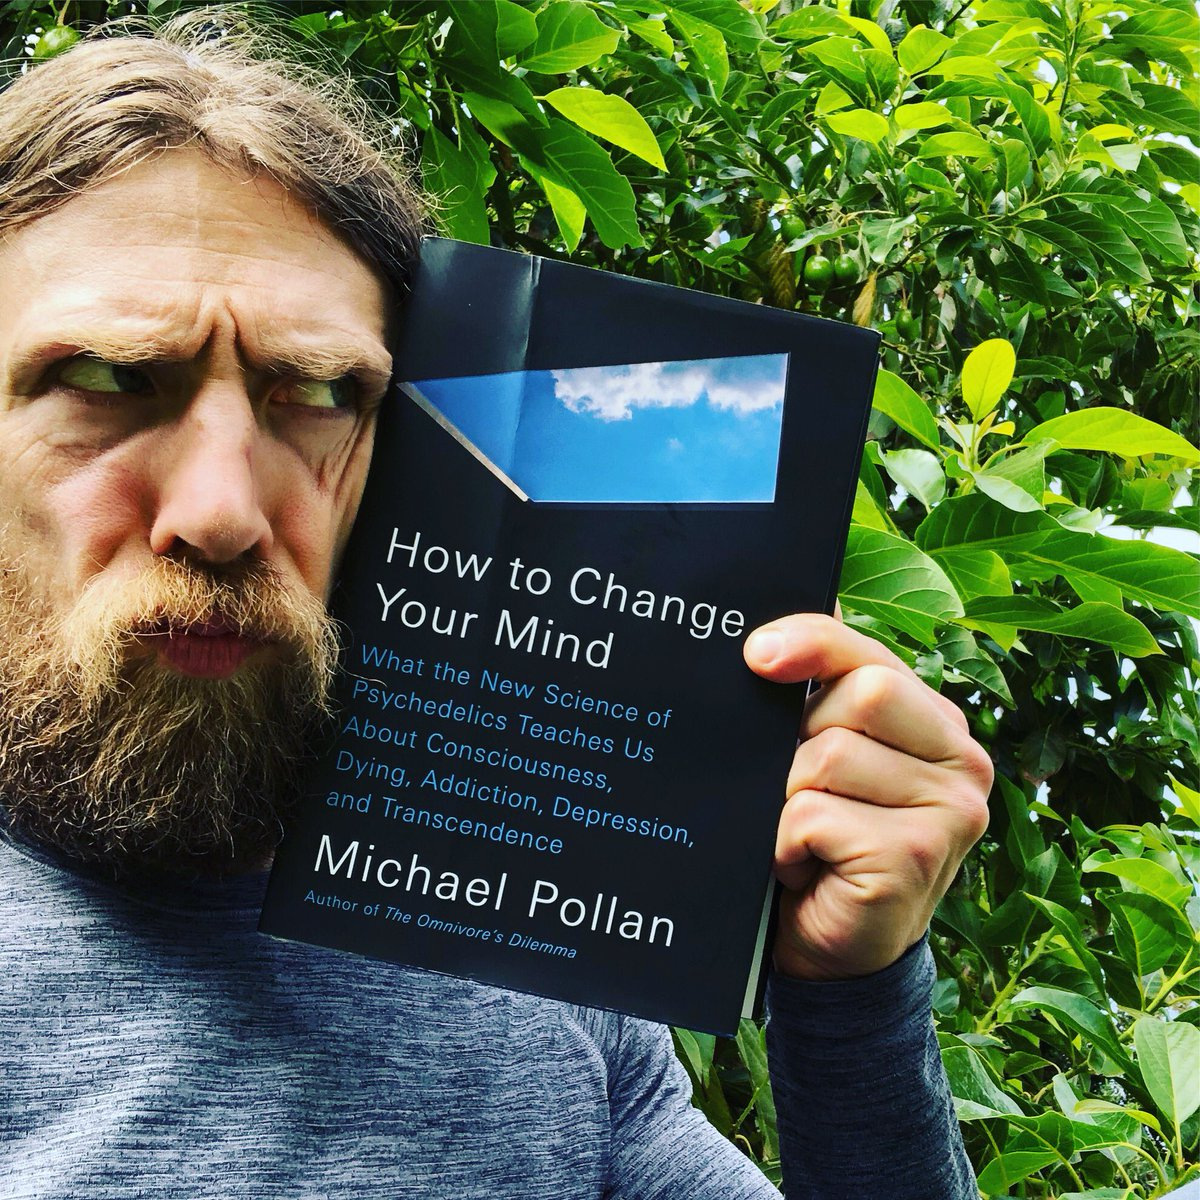 Currently reading: How to Change Your Mind by @michaelpollan